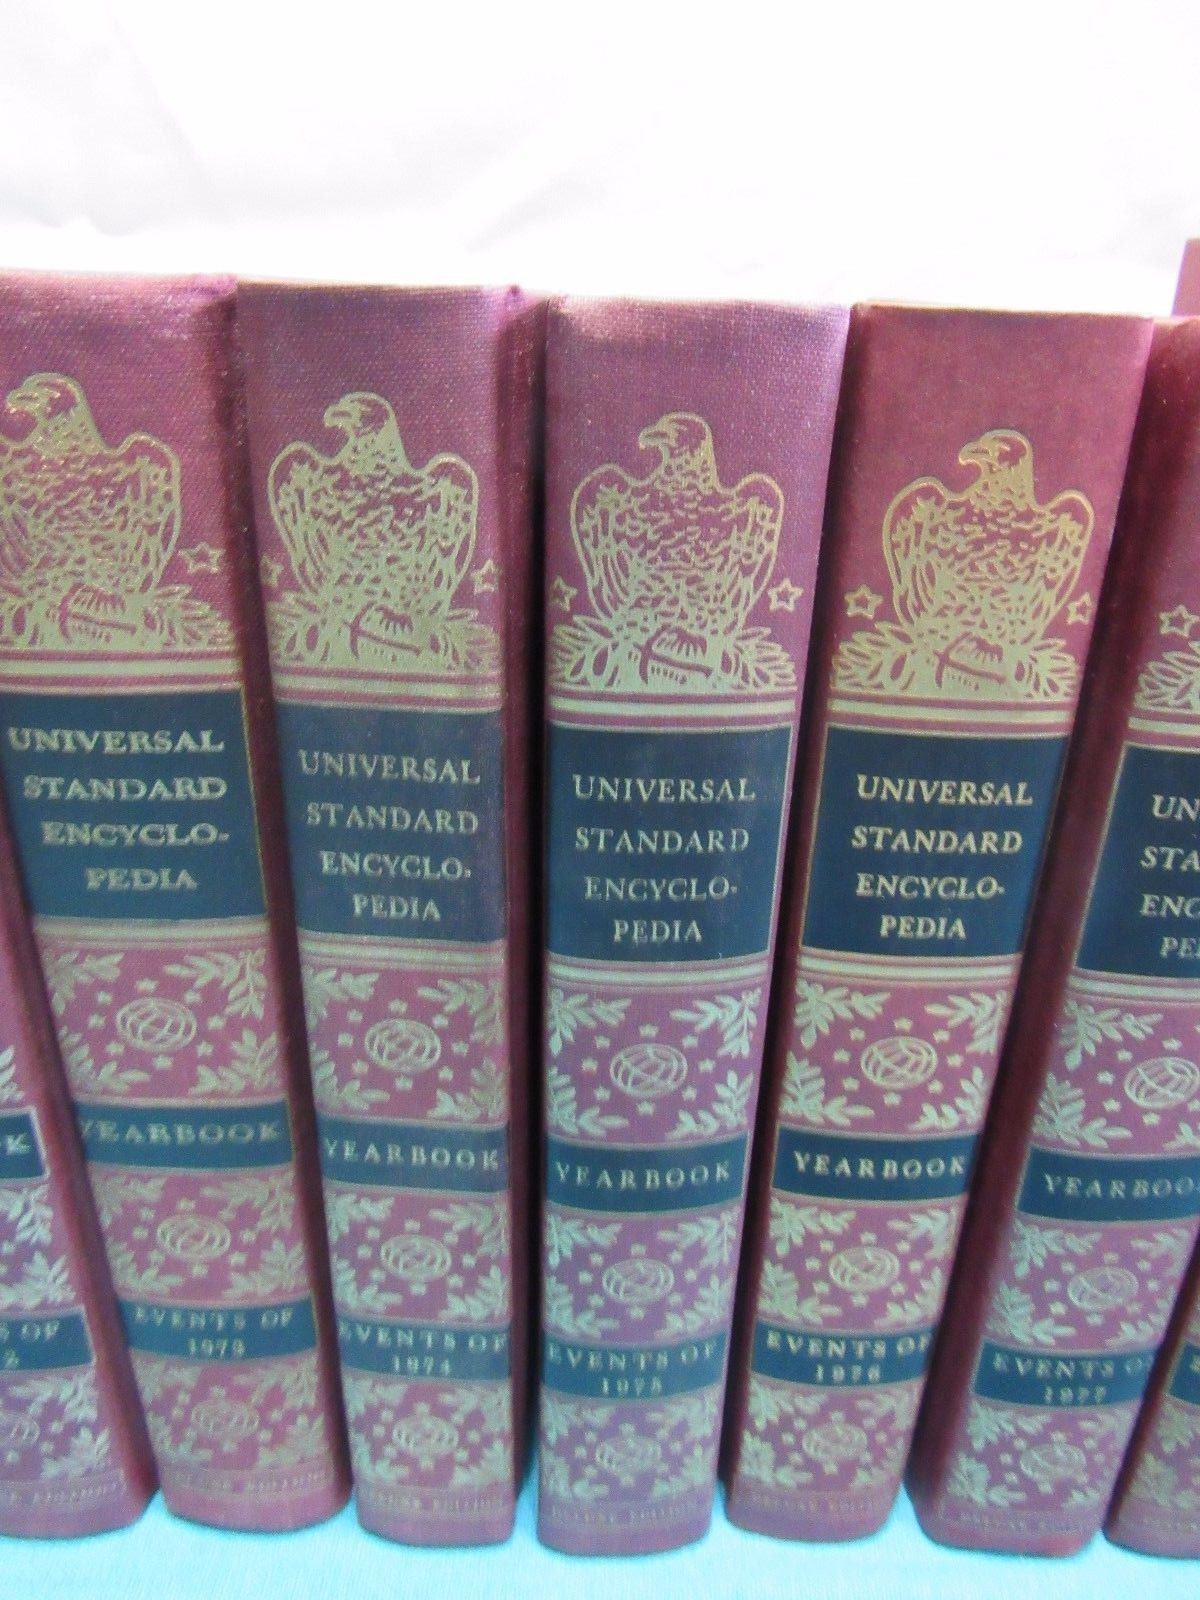 Universal Standard Encyclopedia Reference Set Yearbook 1971-1989 Deluxe Edition